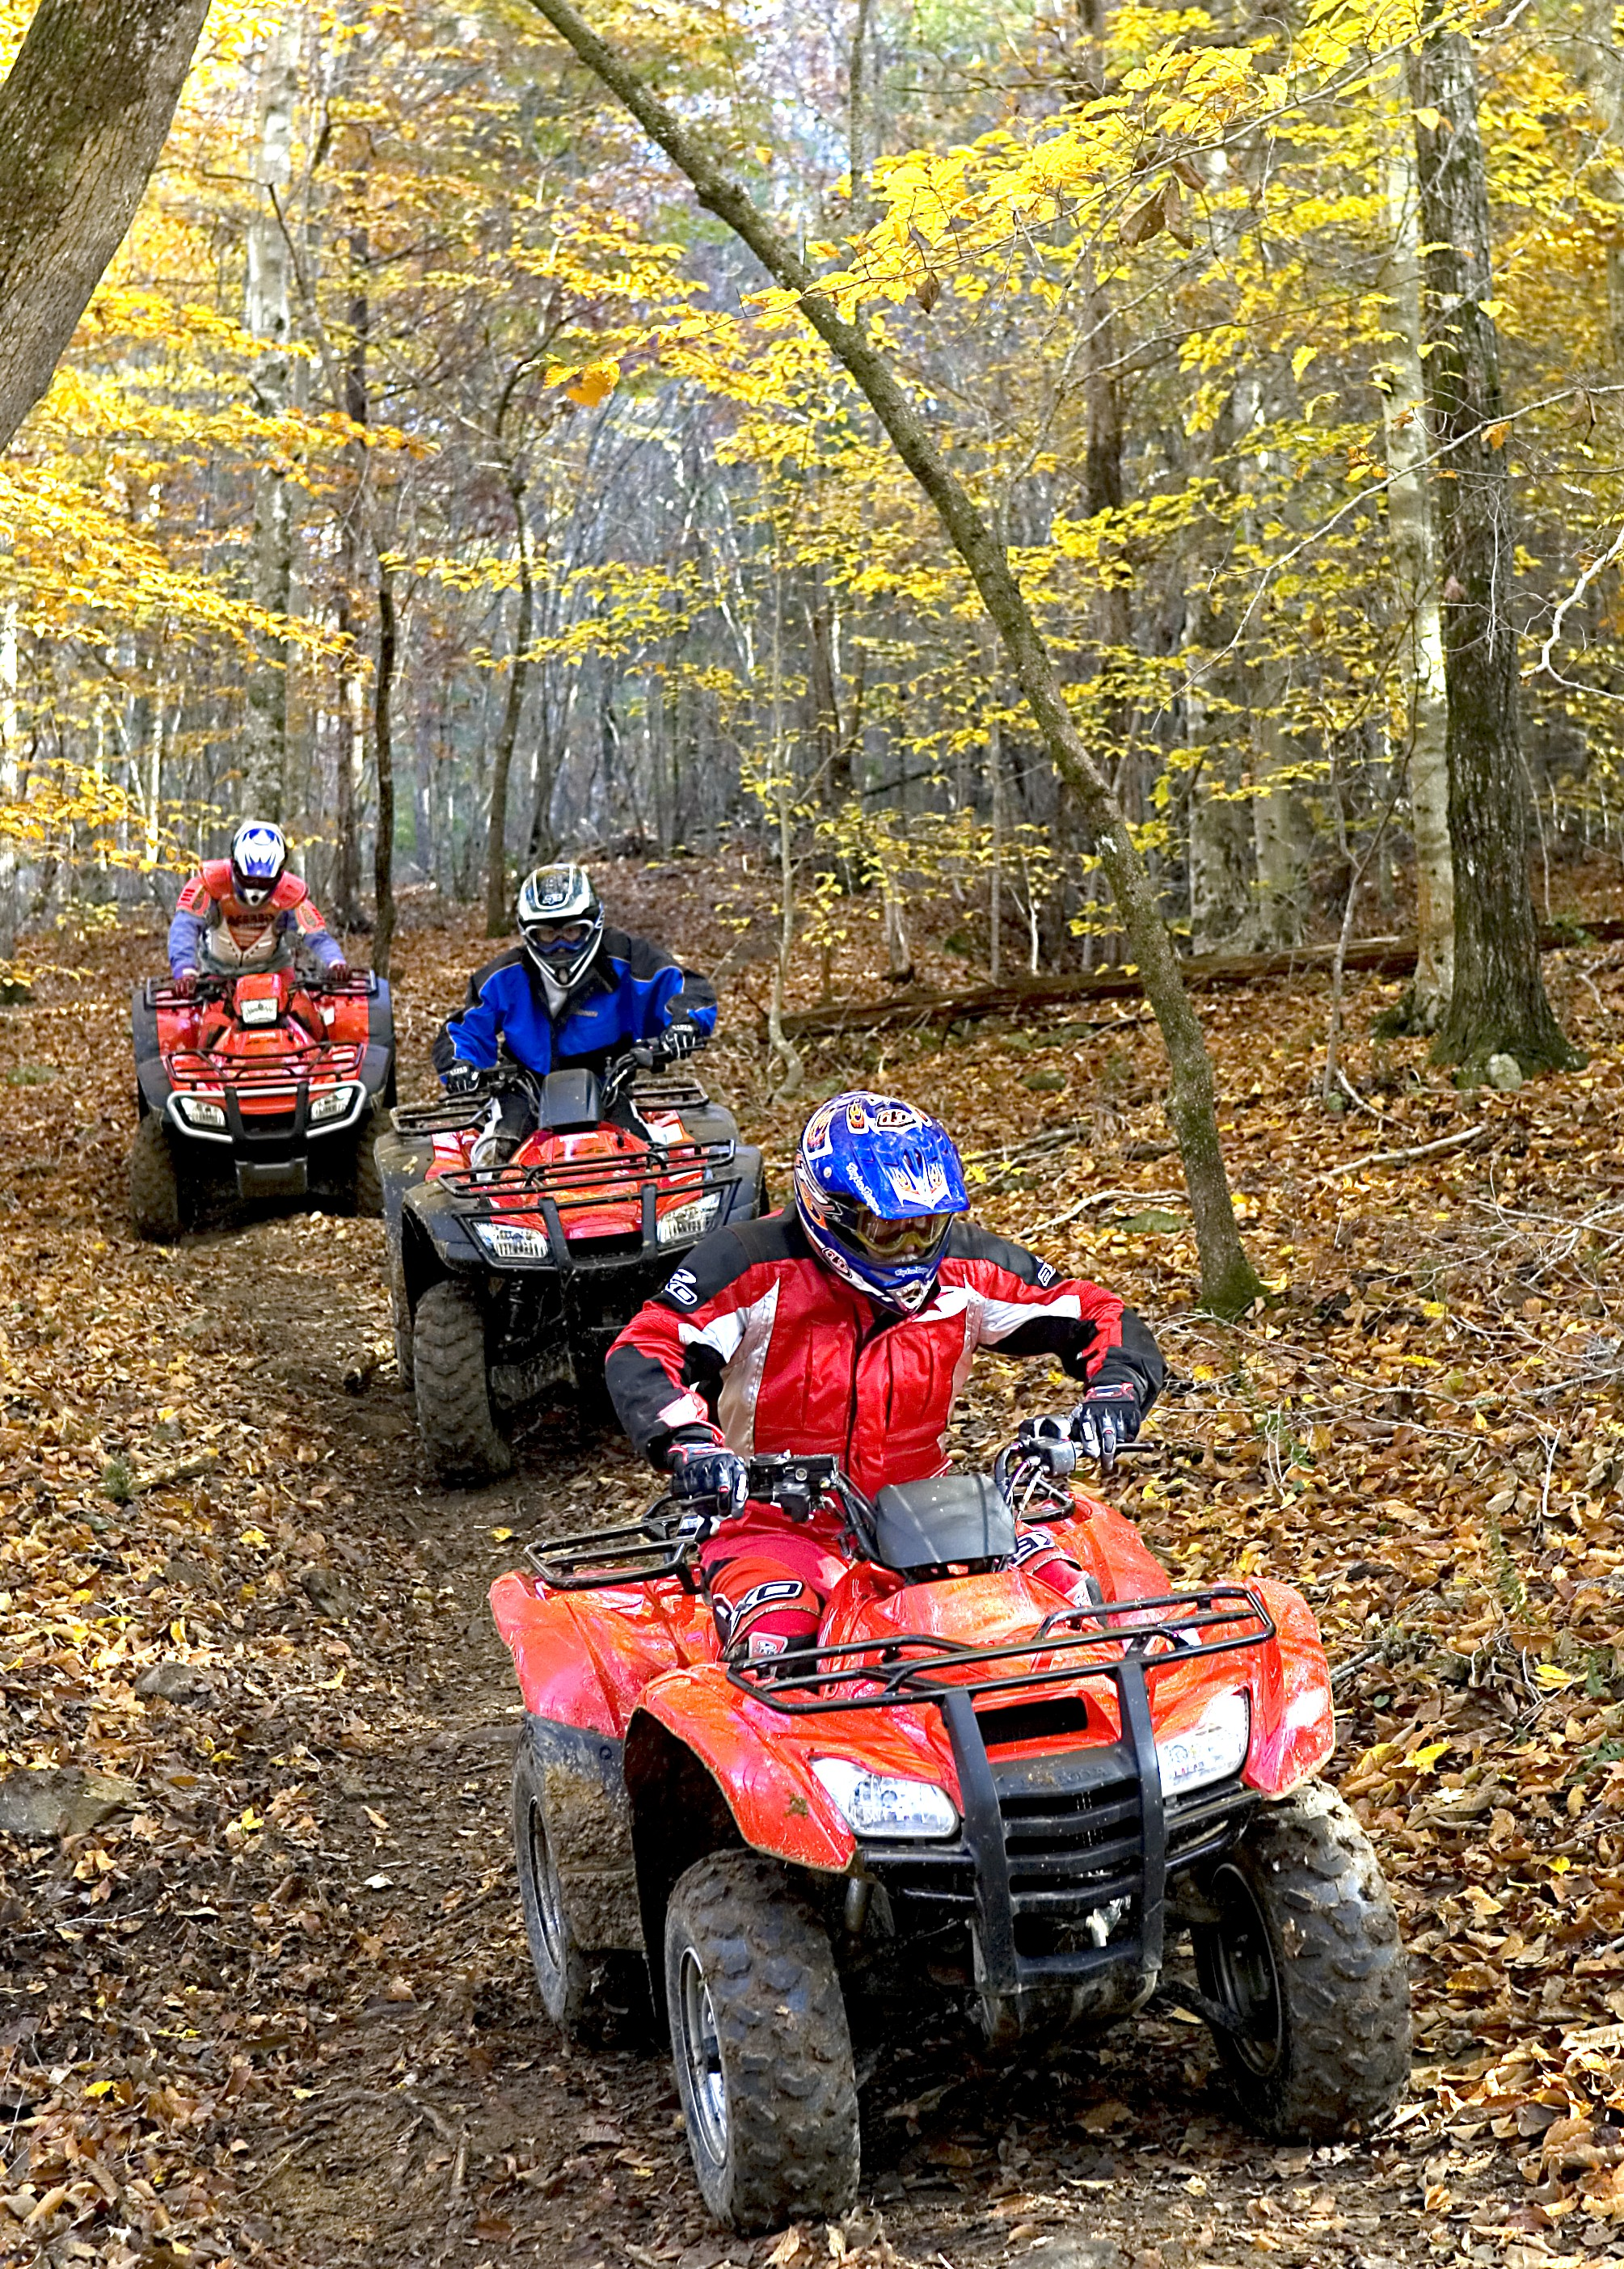 ATV Riding is a Sport that Adventure Lovers Enjoy